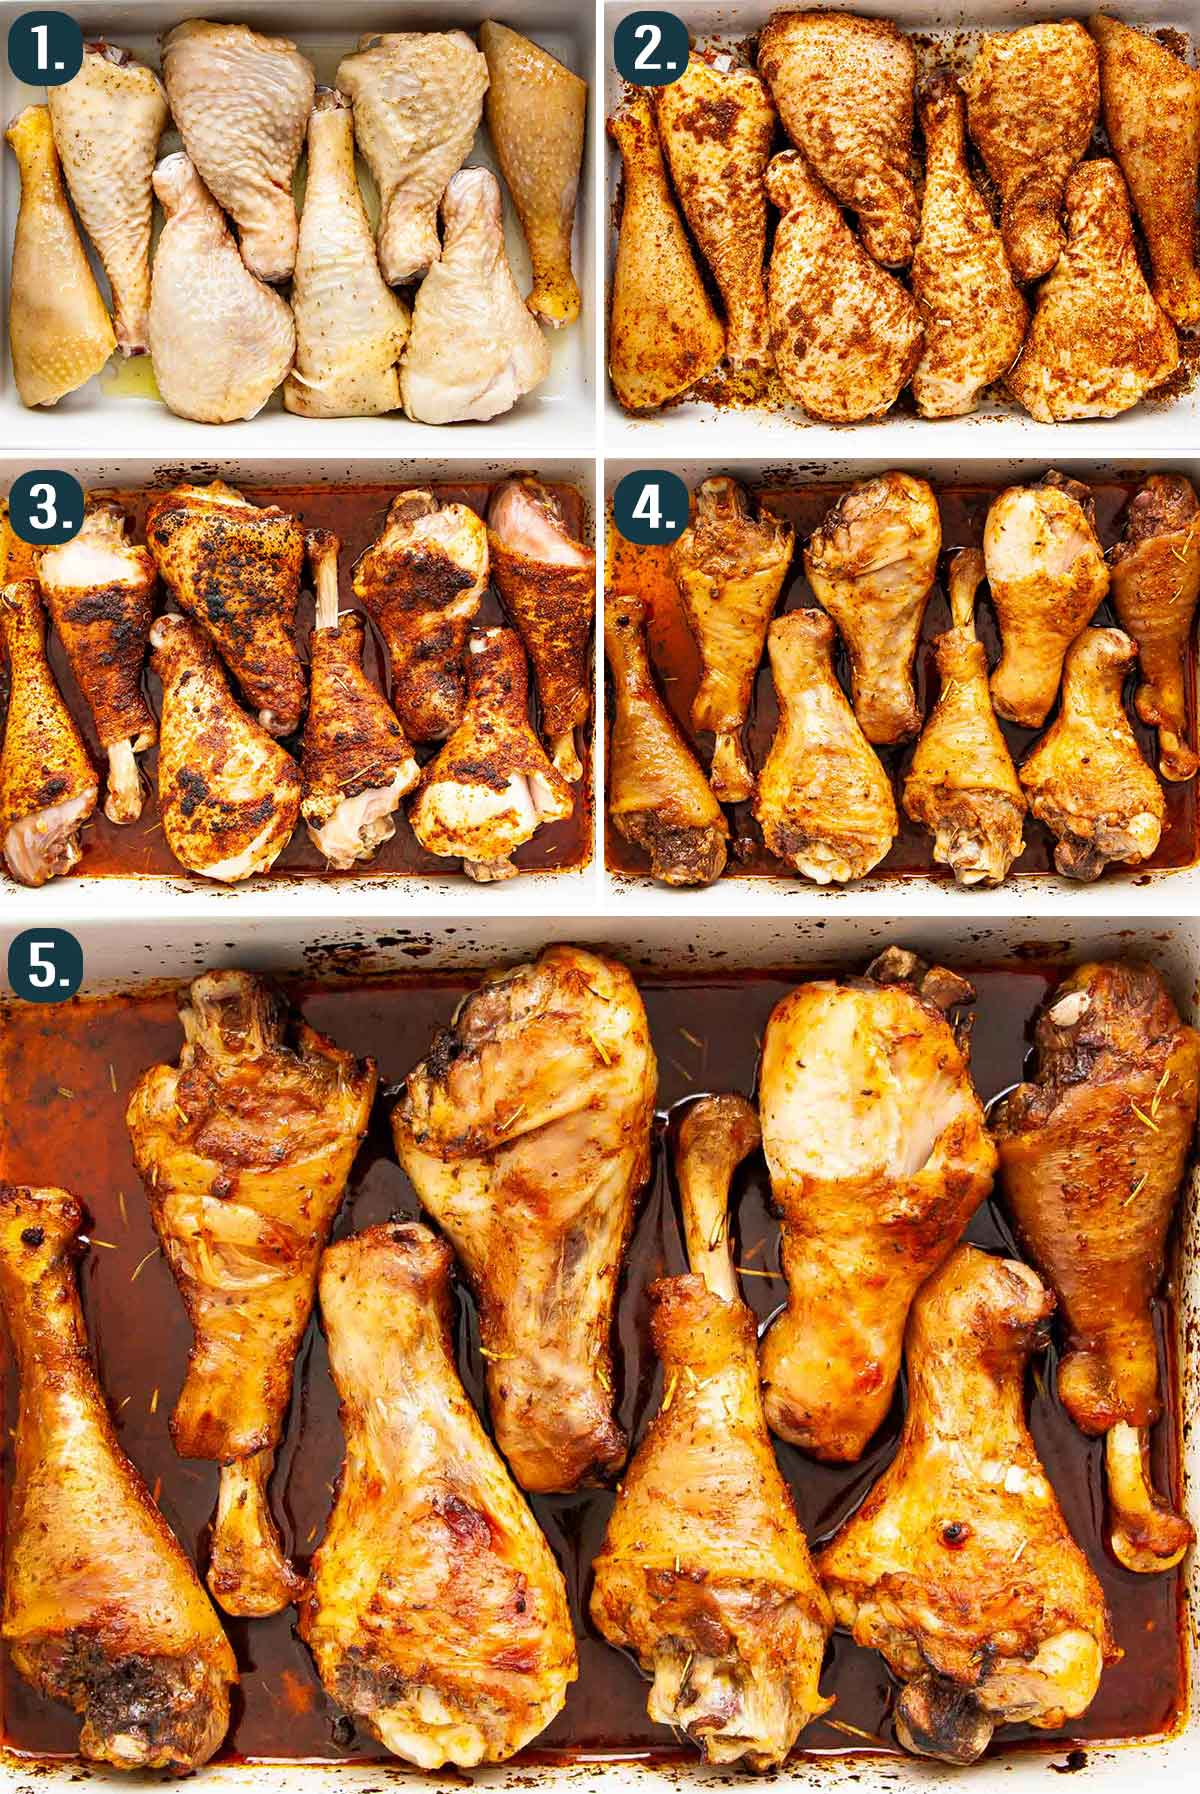 process shots showing how to make baked chicken drumsticks.